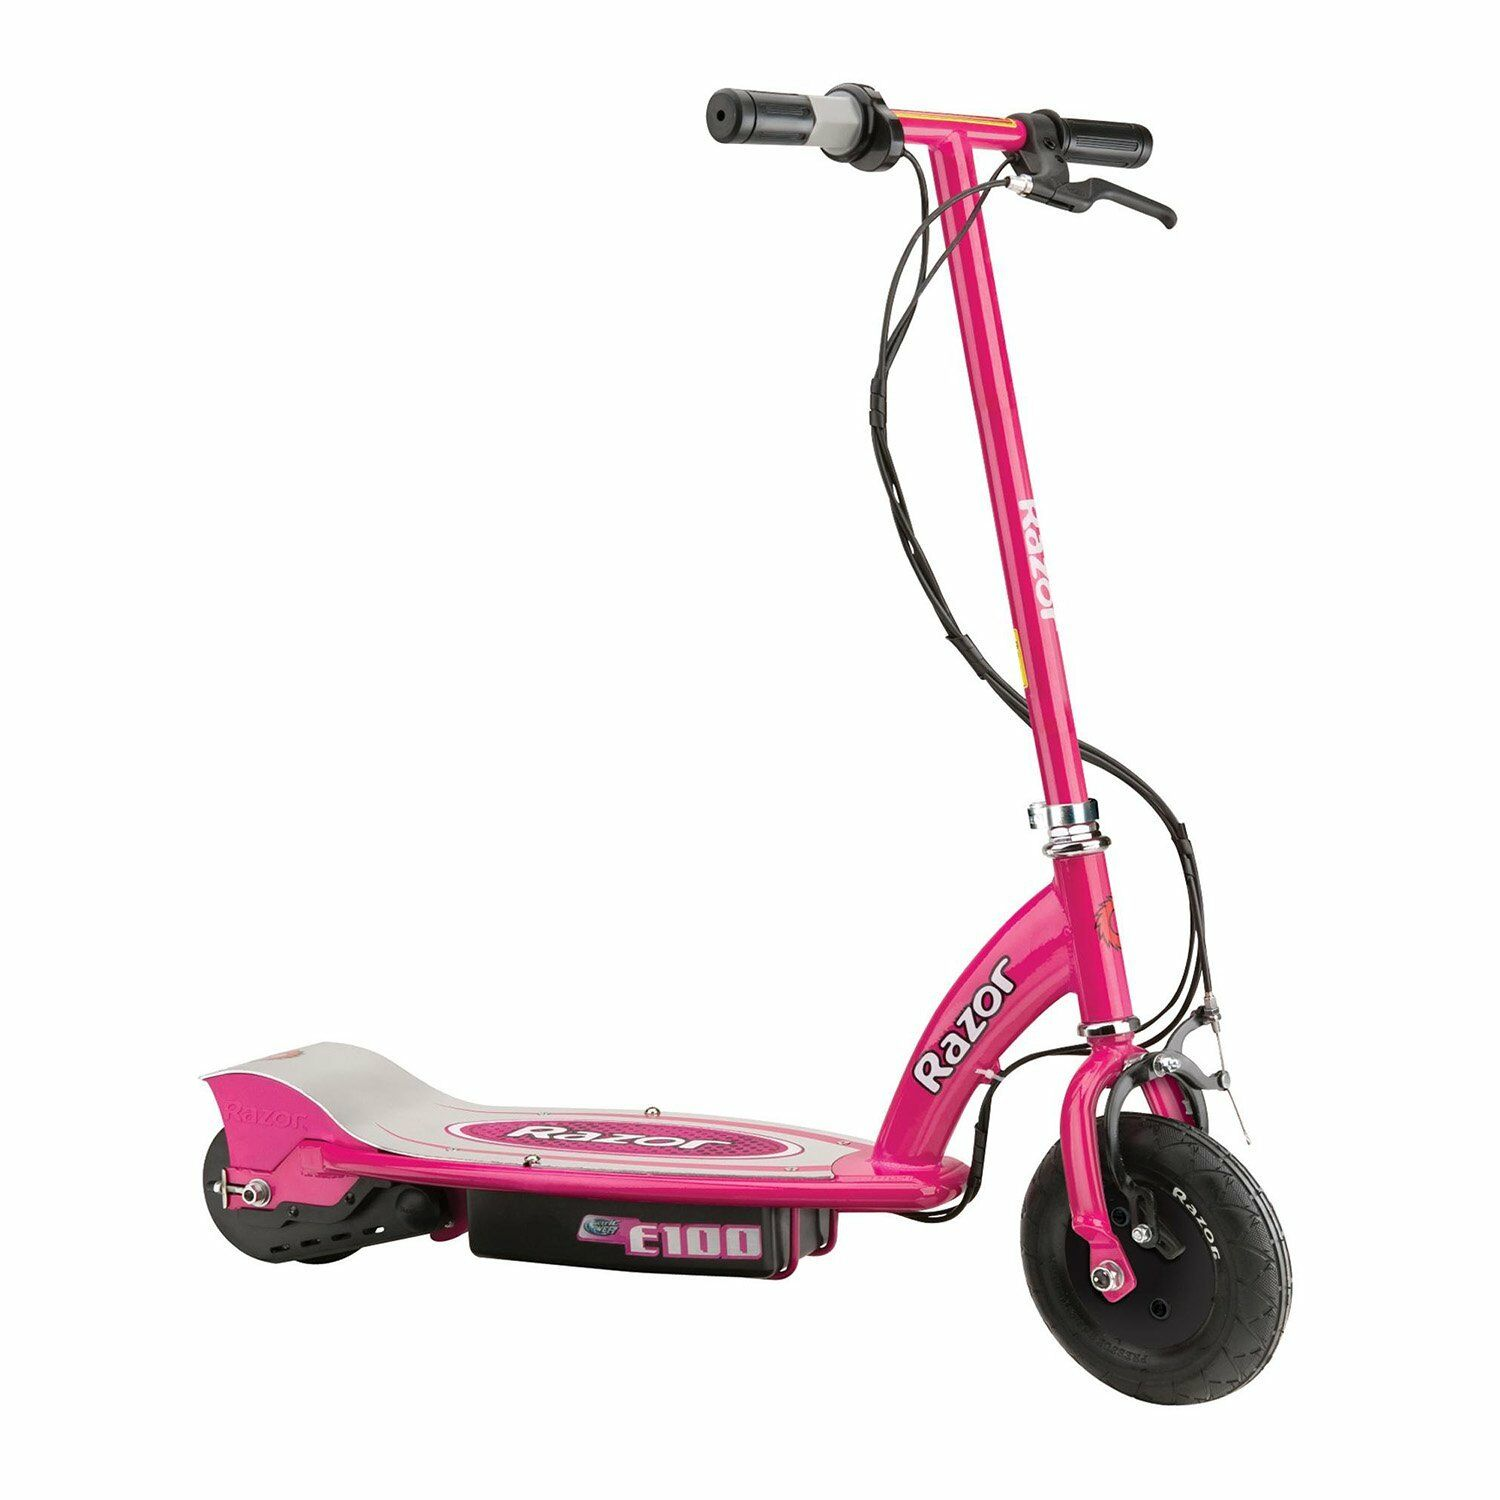 Razor E100 Motorized 24 Volt Electric Powered Ride-On Kids Scooter, Pink